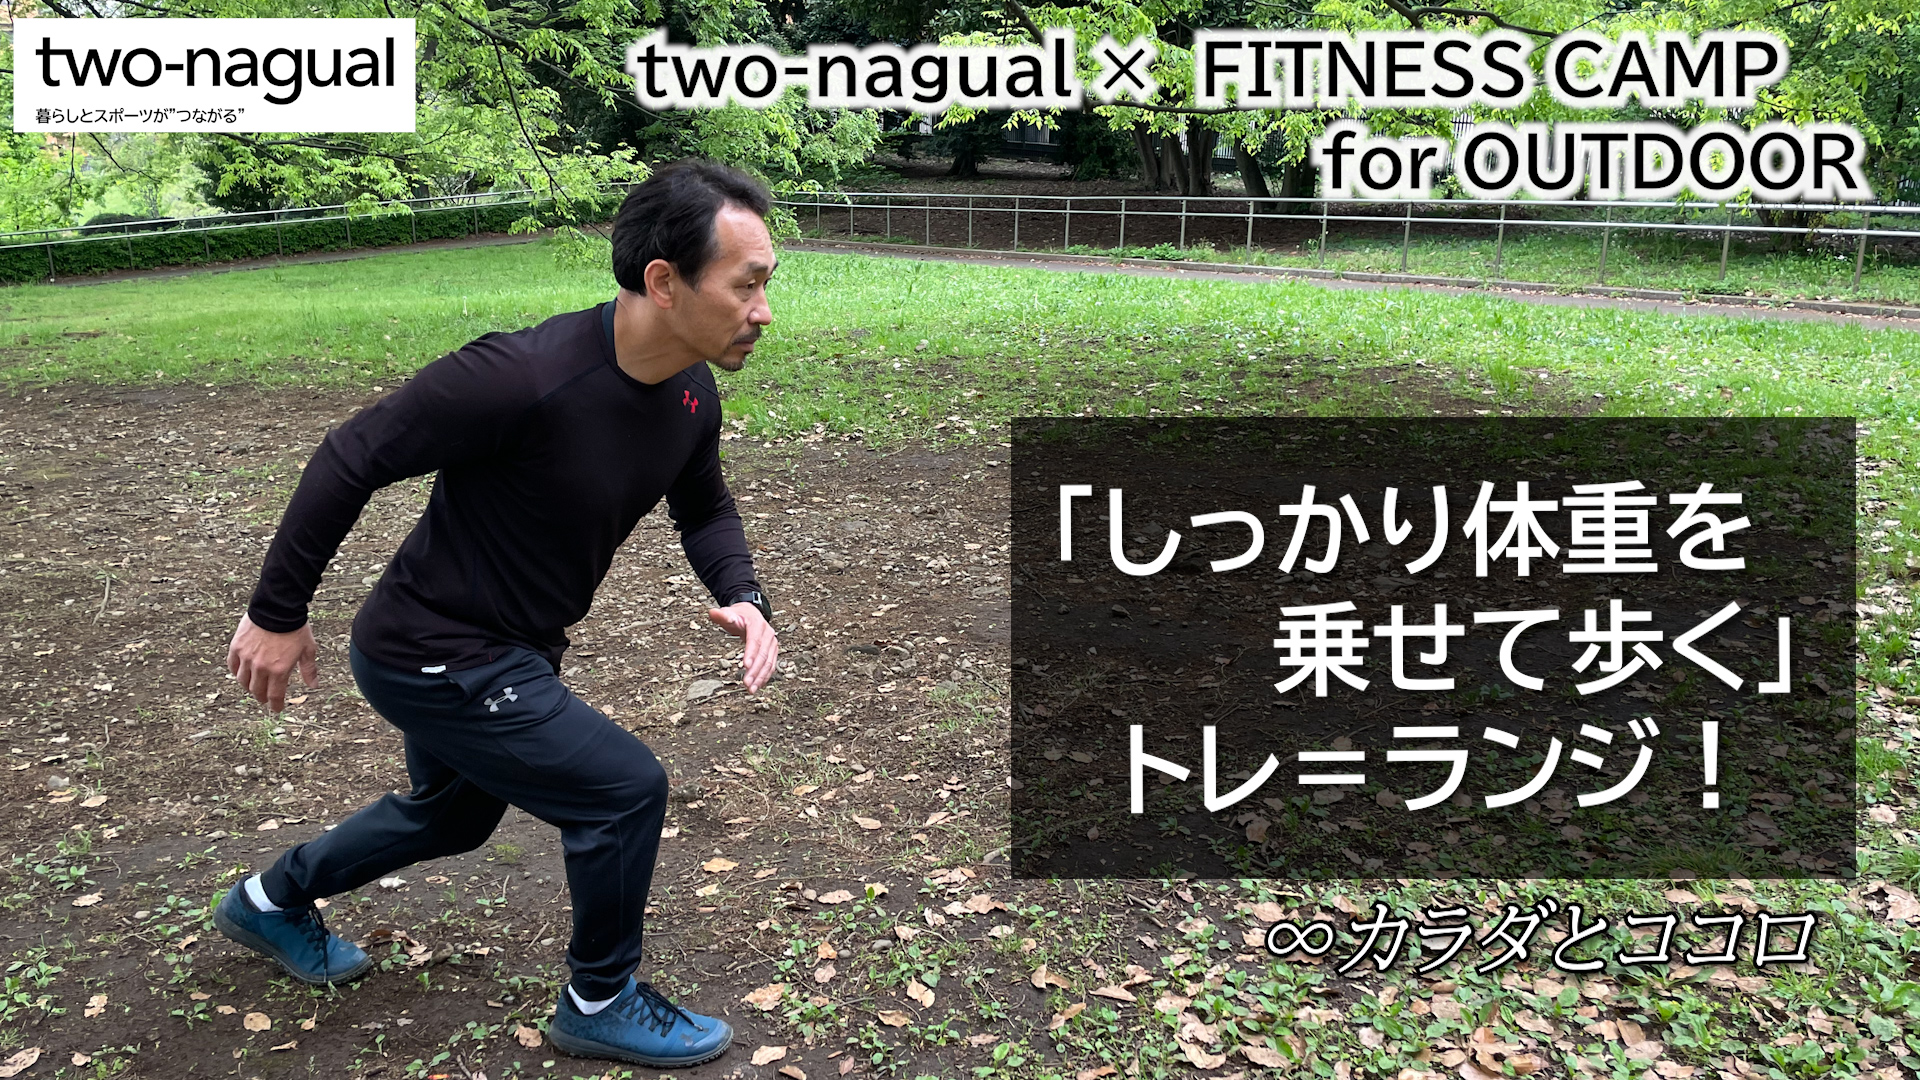 <small>【two-nagual × FITNESS CAMP for OUTDOOR】</small><br />「しっかり体重を乗せて歩く」トレ=ランジ!